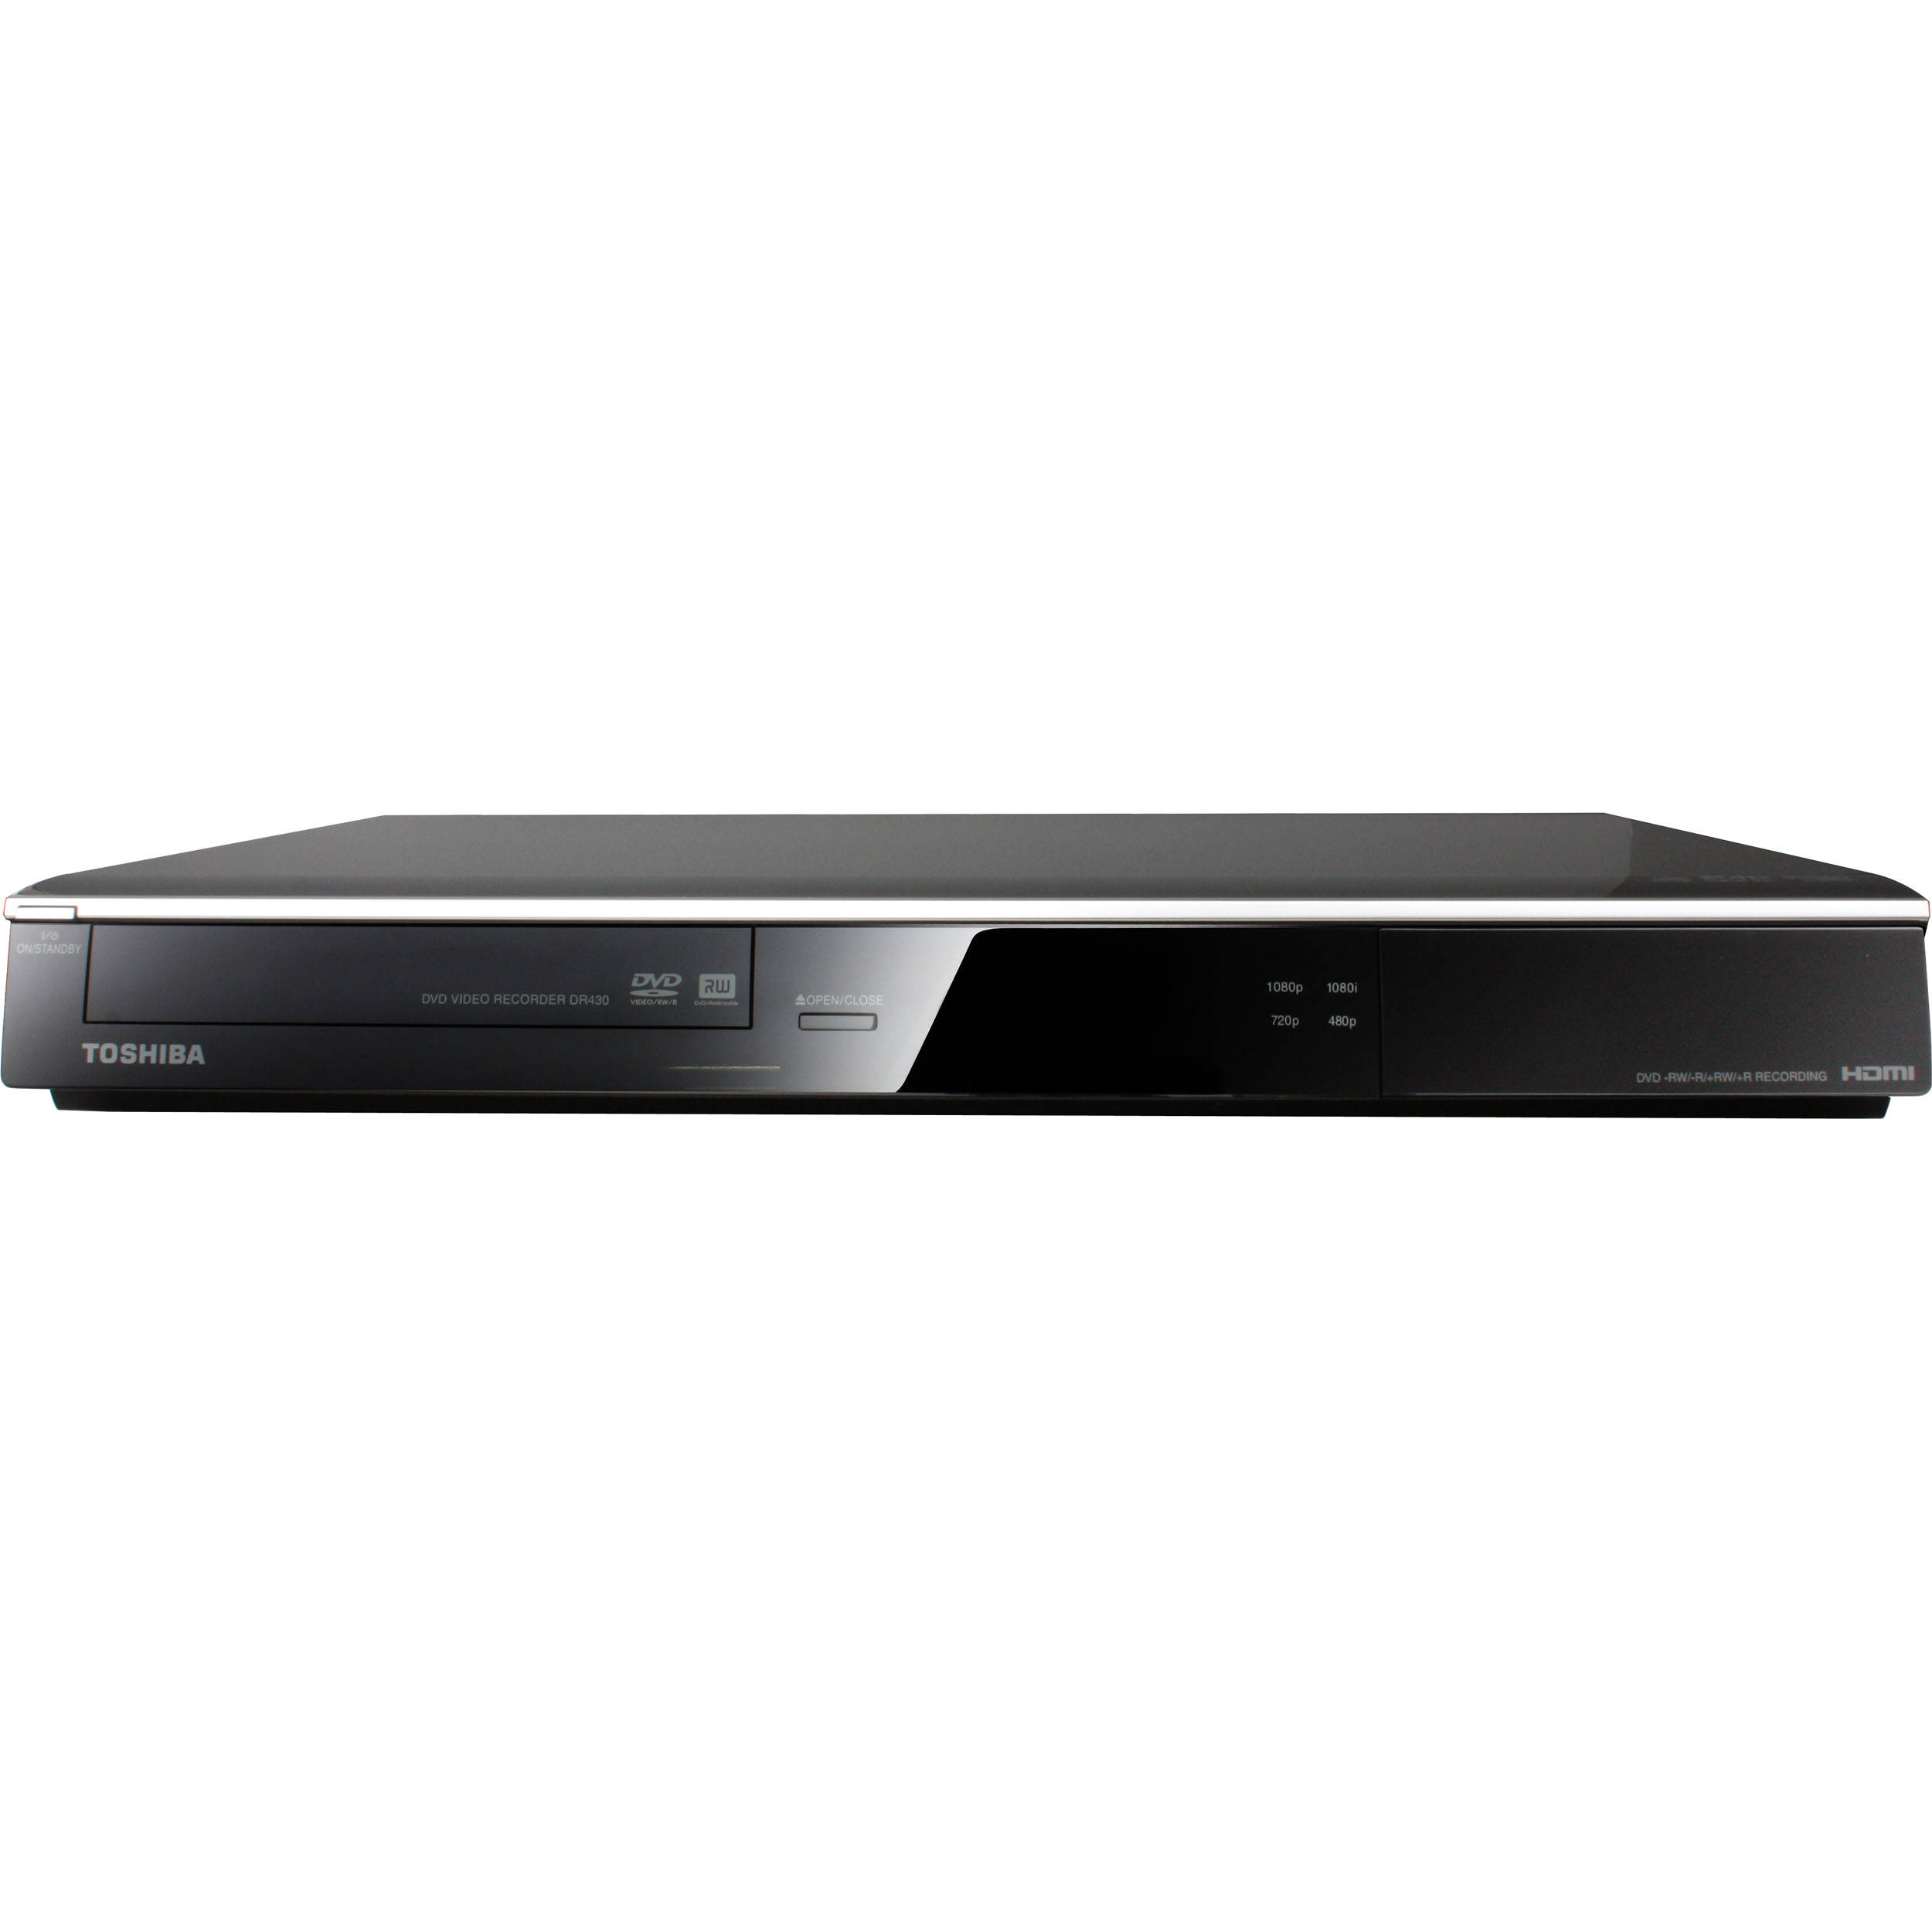 philips dvdr5350h dvdr7310h hdd dvd recorder service manual